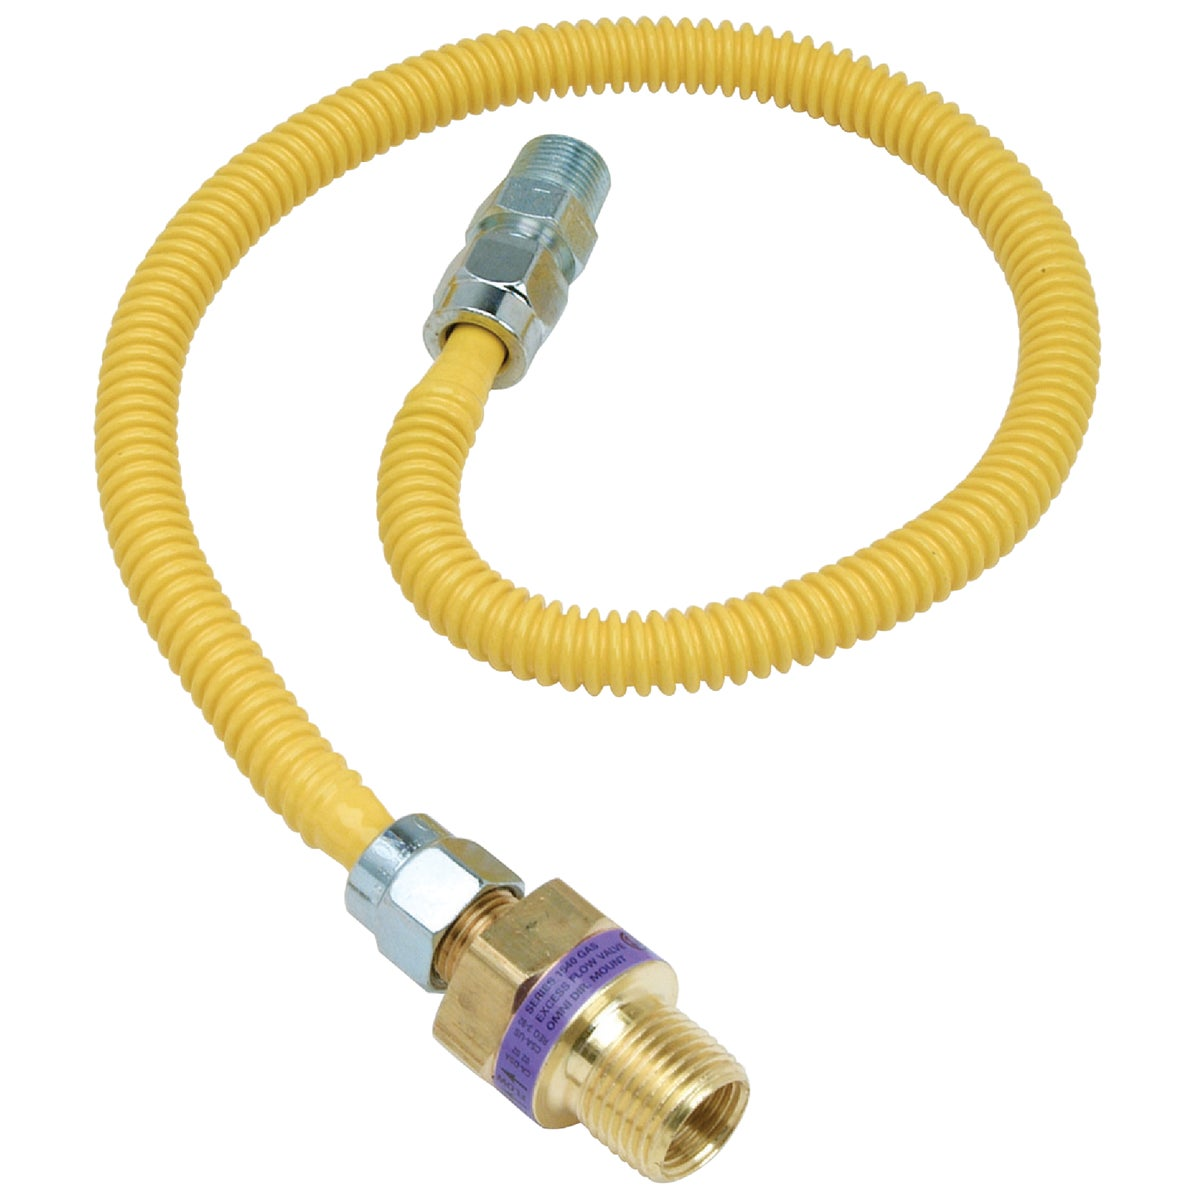 1/2X3/8-36 GAS CONNECTOR - CSSL47E-36P by Brass Craft